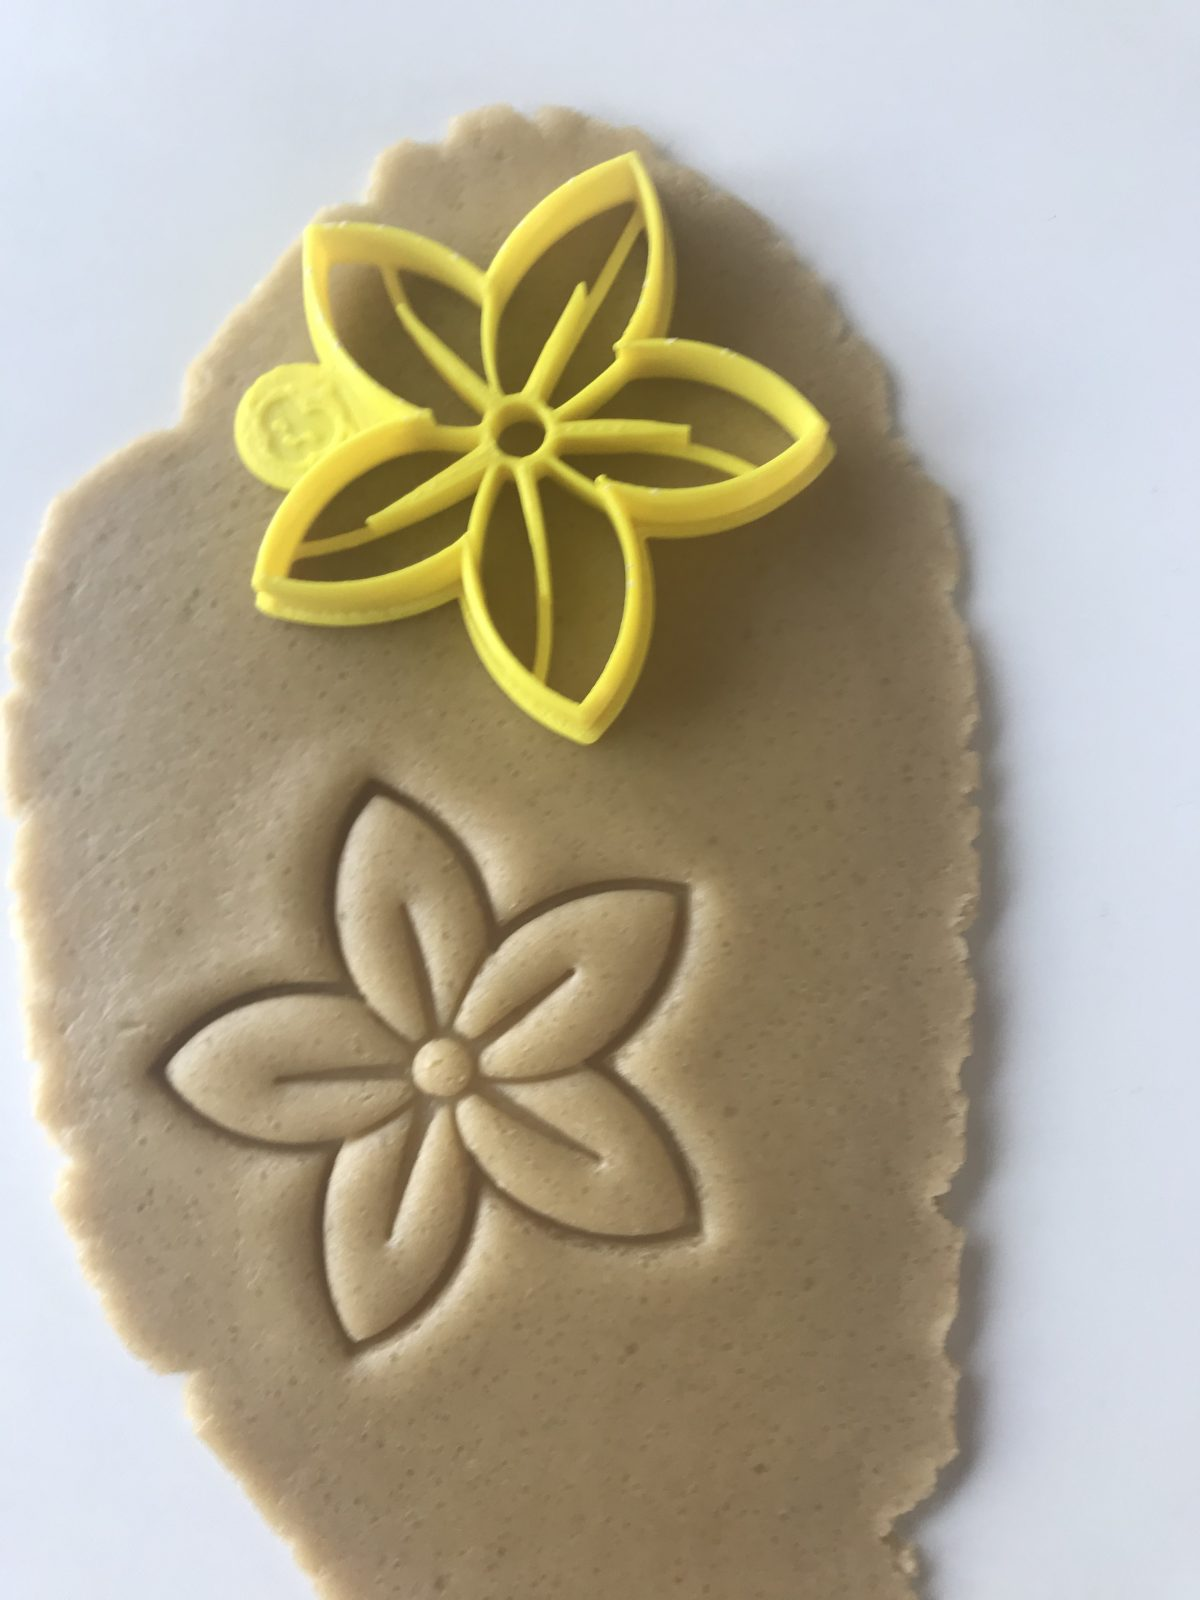 Five Petal Flower Cookie Cutter